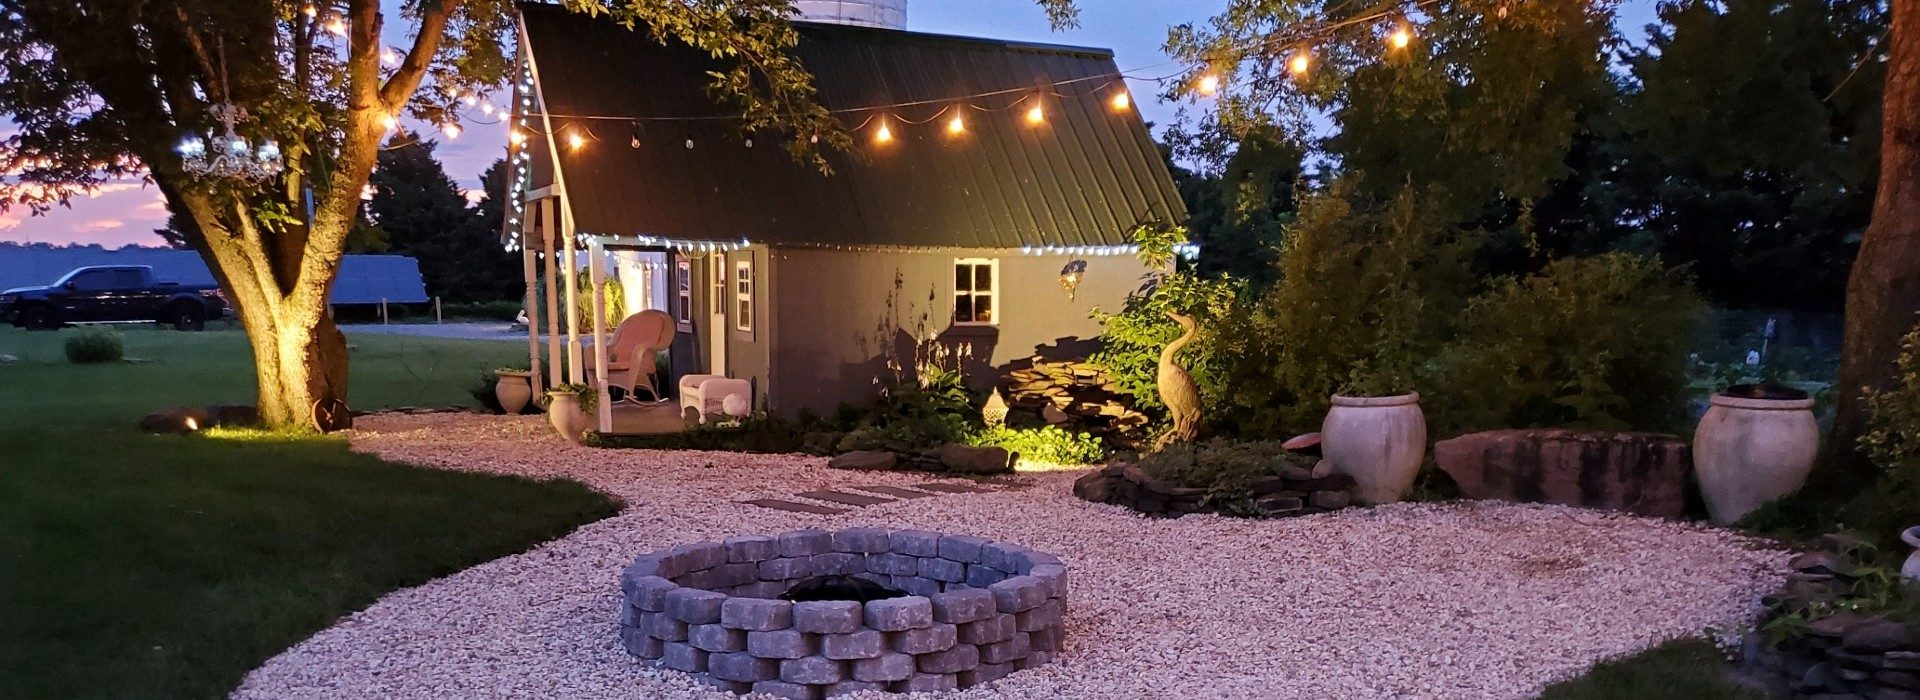 fire pit with stone all around and grey chairs